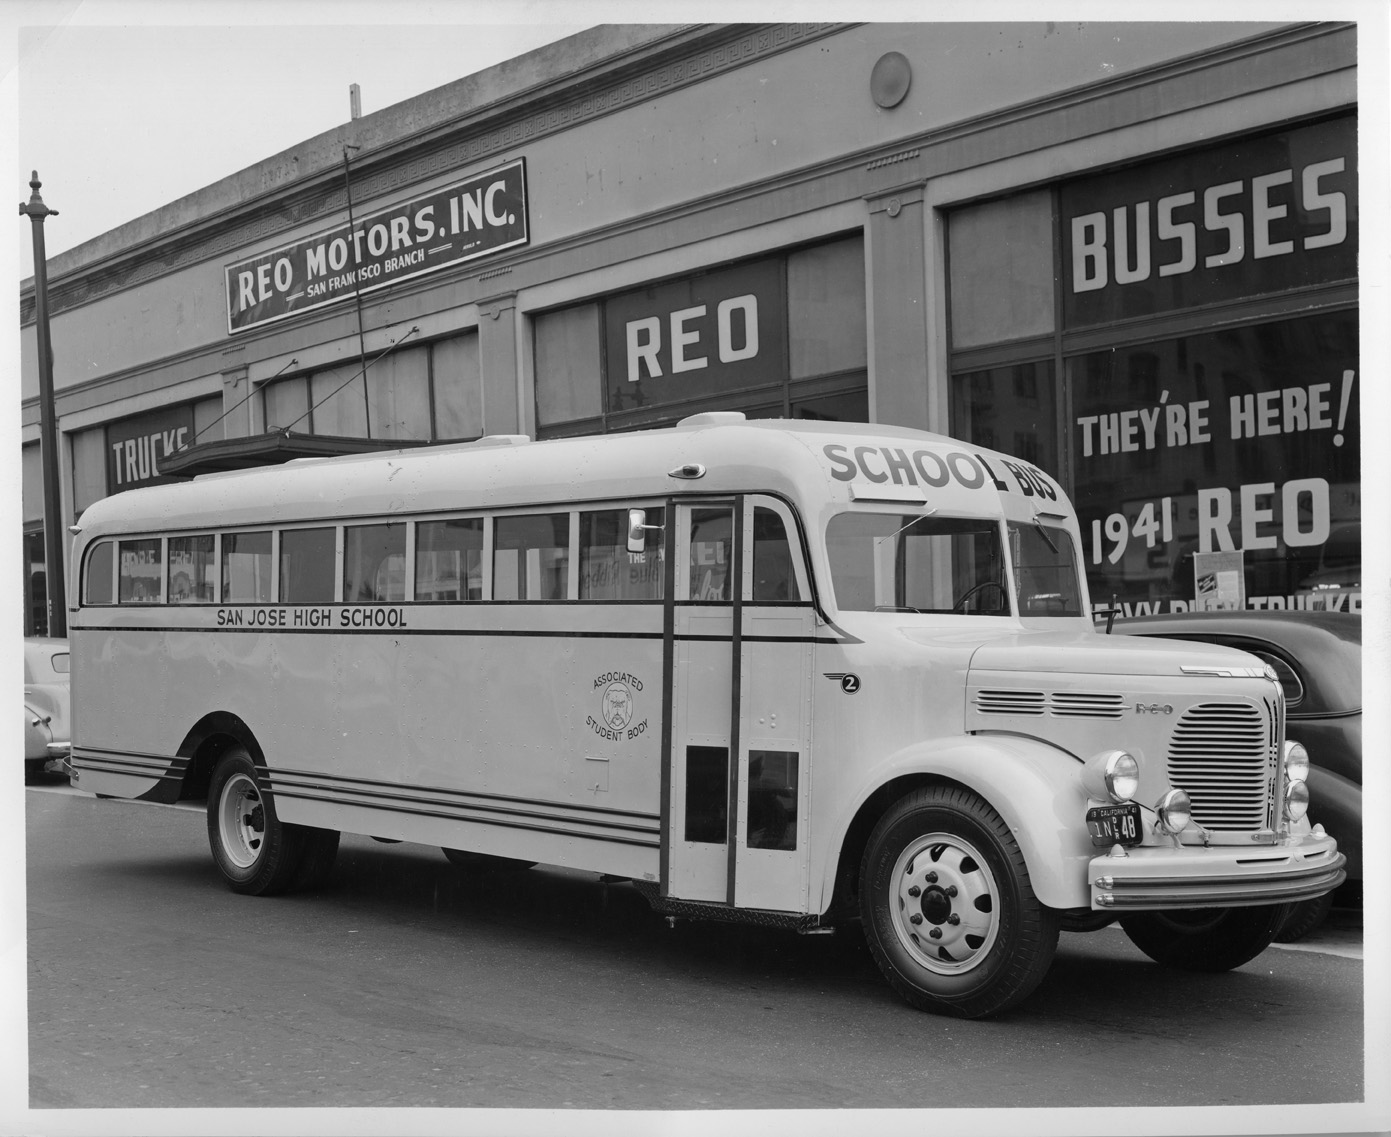 REO Motors School bus, 1941